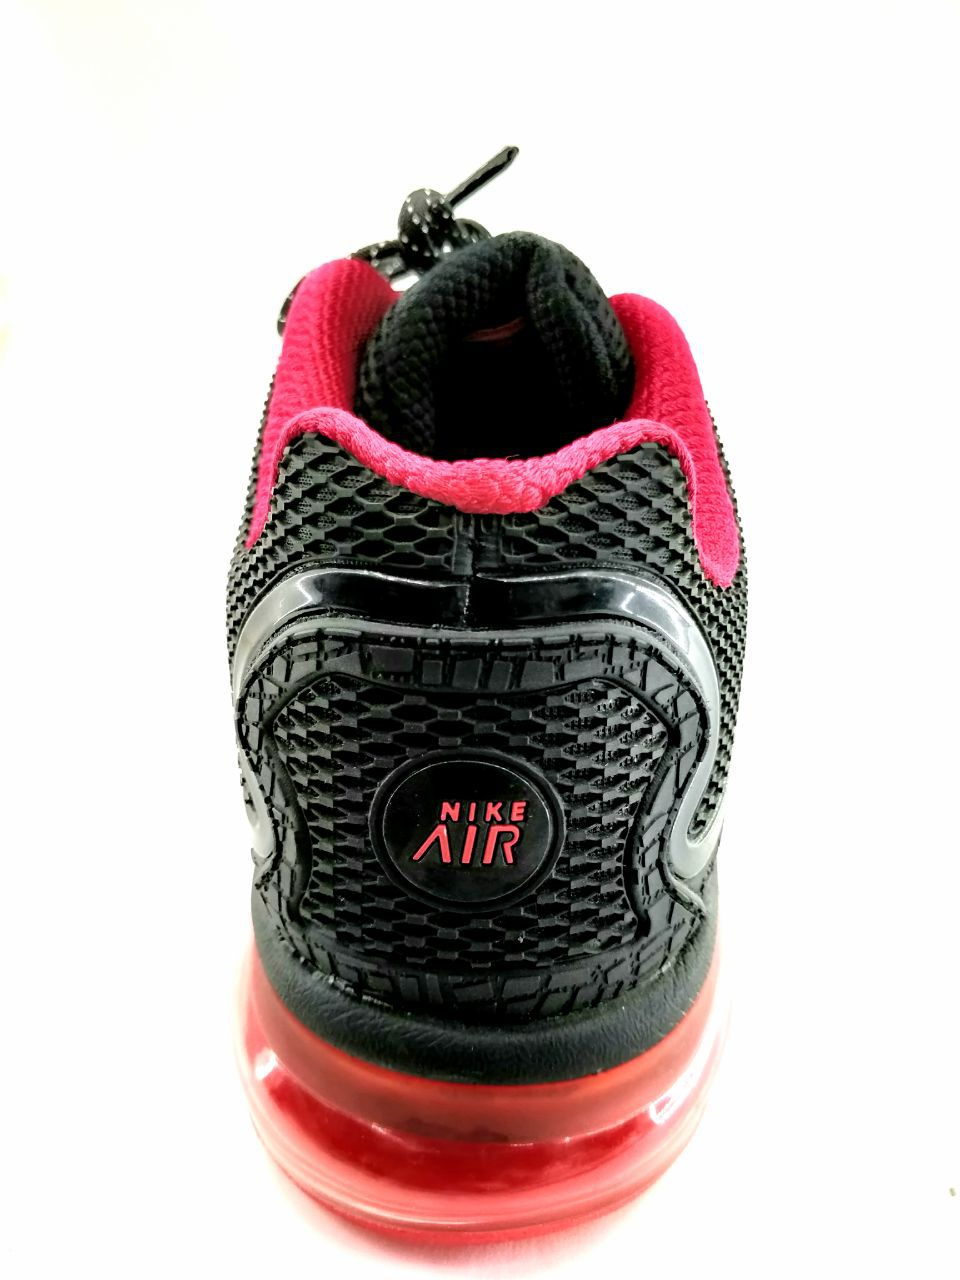 reinado George Hanbury Latón  Nike Airmax 2018 Elite Red Running Shoes - Buy Nike Airmax 2018 Elite Red  Running Shoes Online at Best Prices in India on Snapdeal